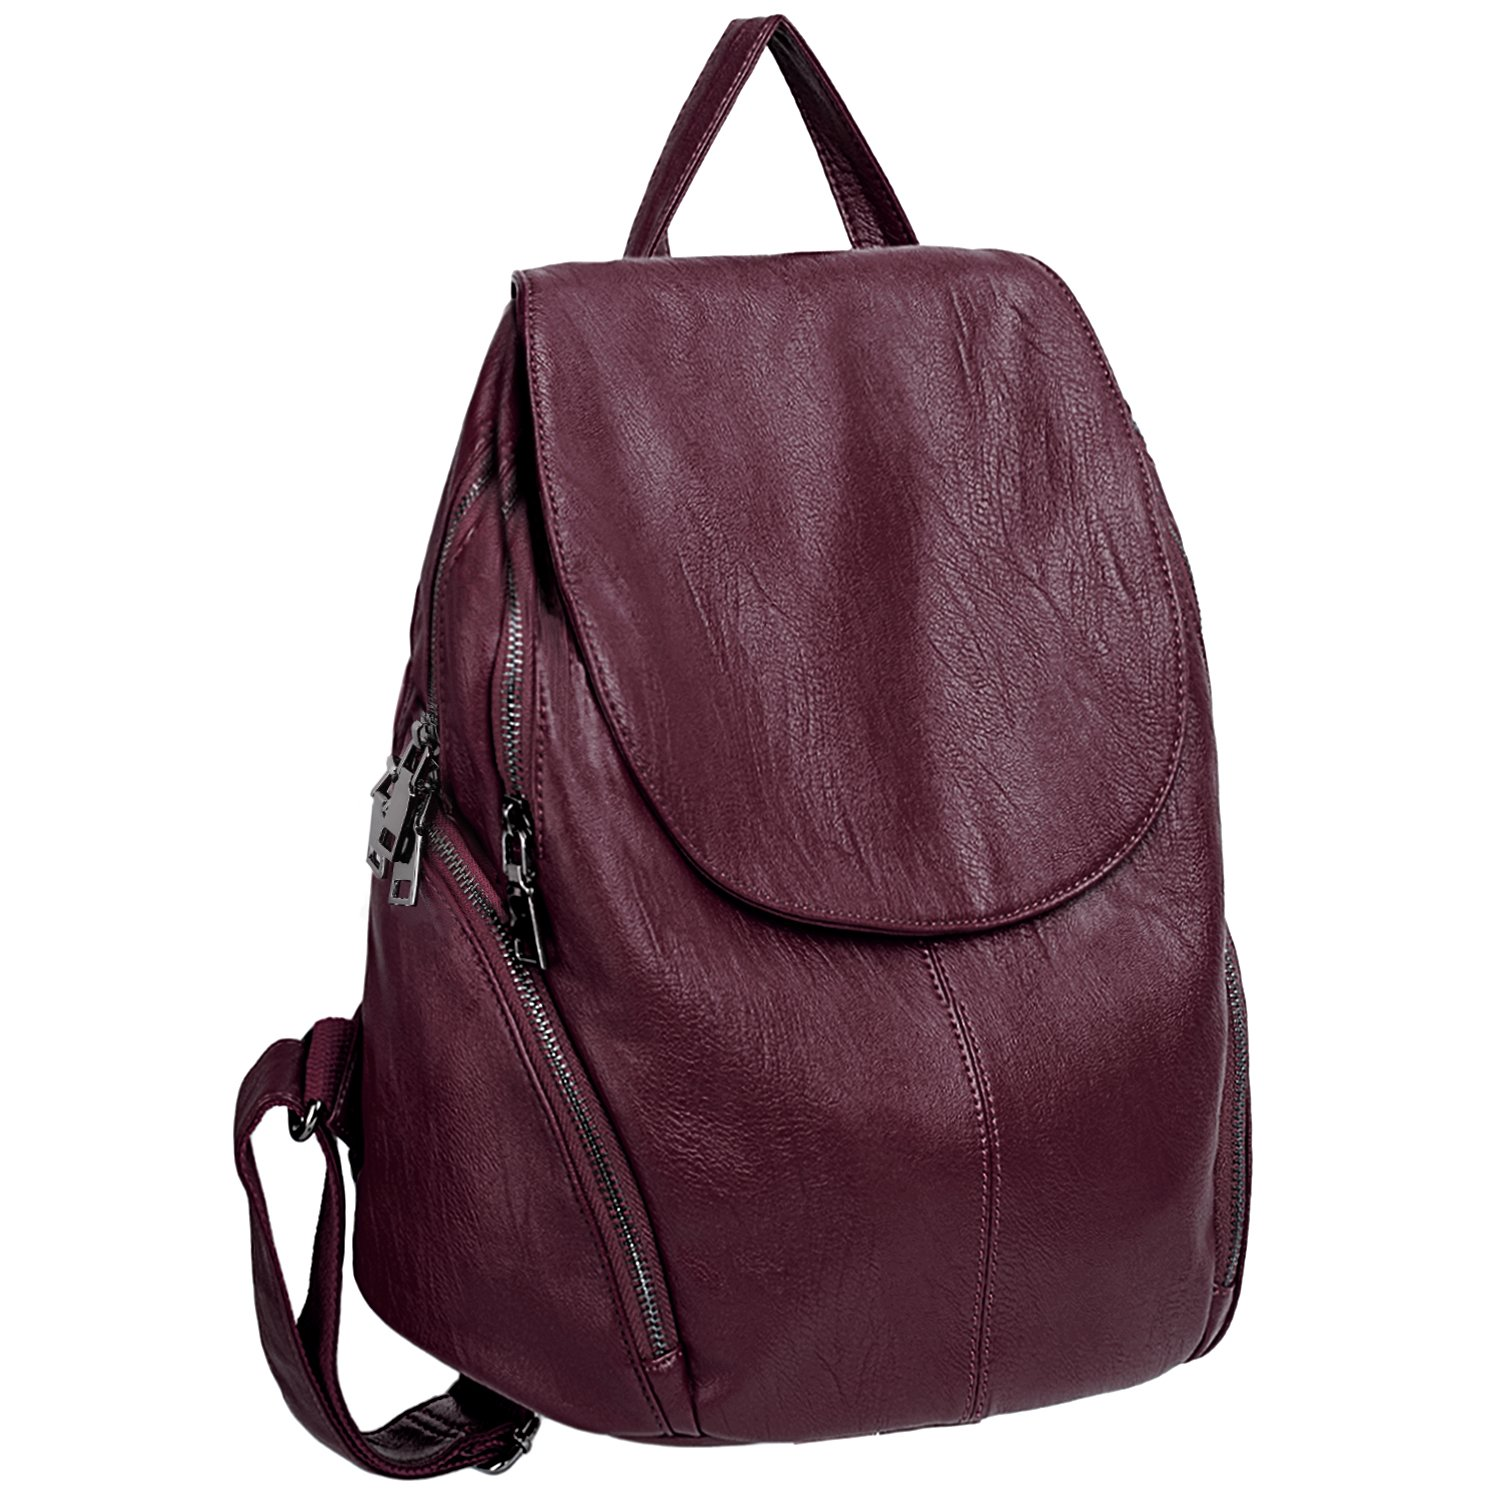 UTO Women Backpack Purse PU Washed Leather Large Capacity Ladies Rucksack Shoulder Bag Red